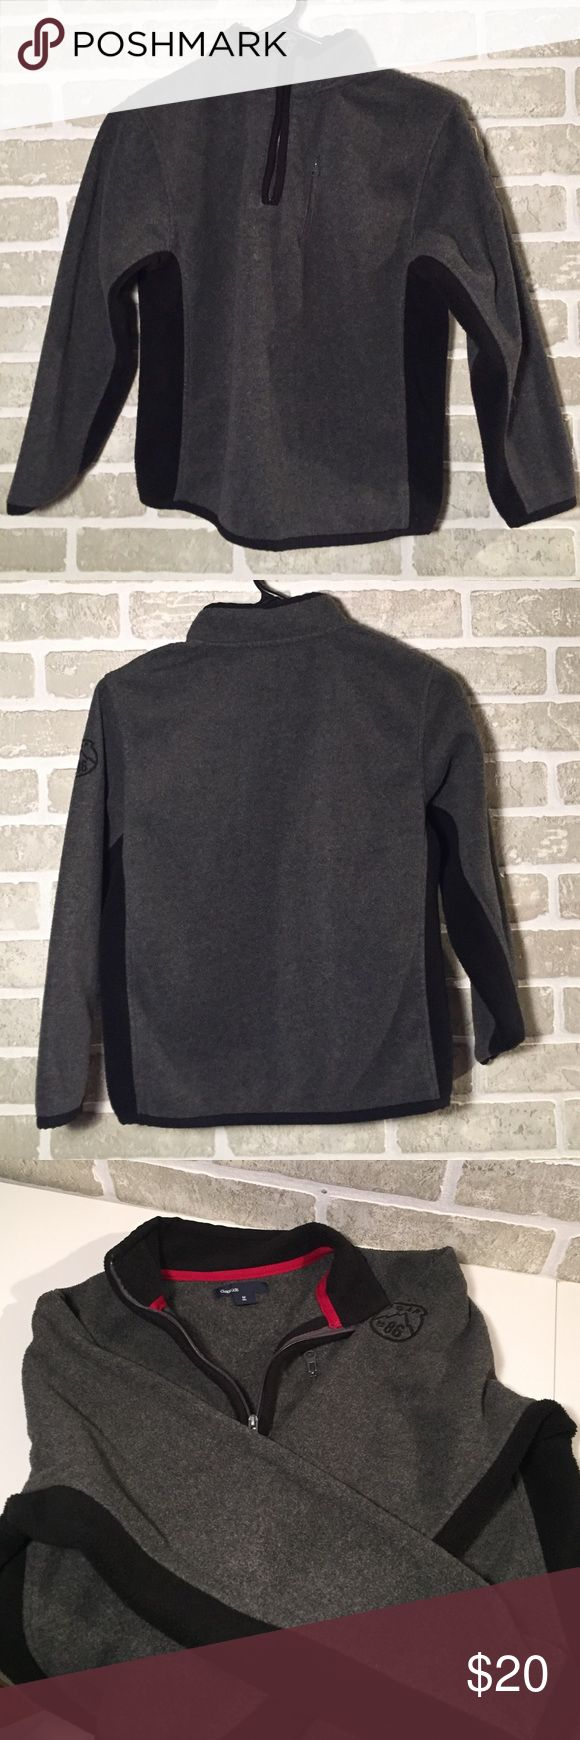 Gap Kids Boys Gray with Black Fleece Pullover Gap Kids Boys Gray with Black Fleece Pullover  size M (8) This is already at the lowest price I can accept,  all offers will be declined. Shirts & Tops Sweatshirts & Hoodies